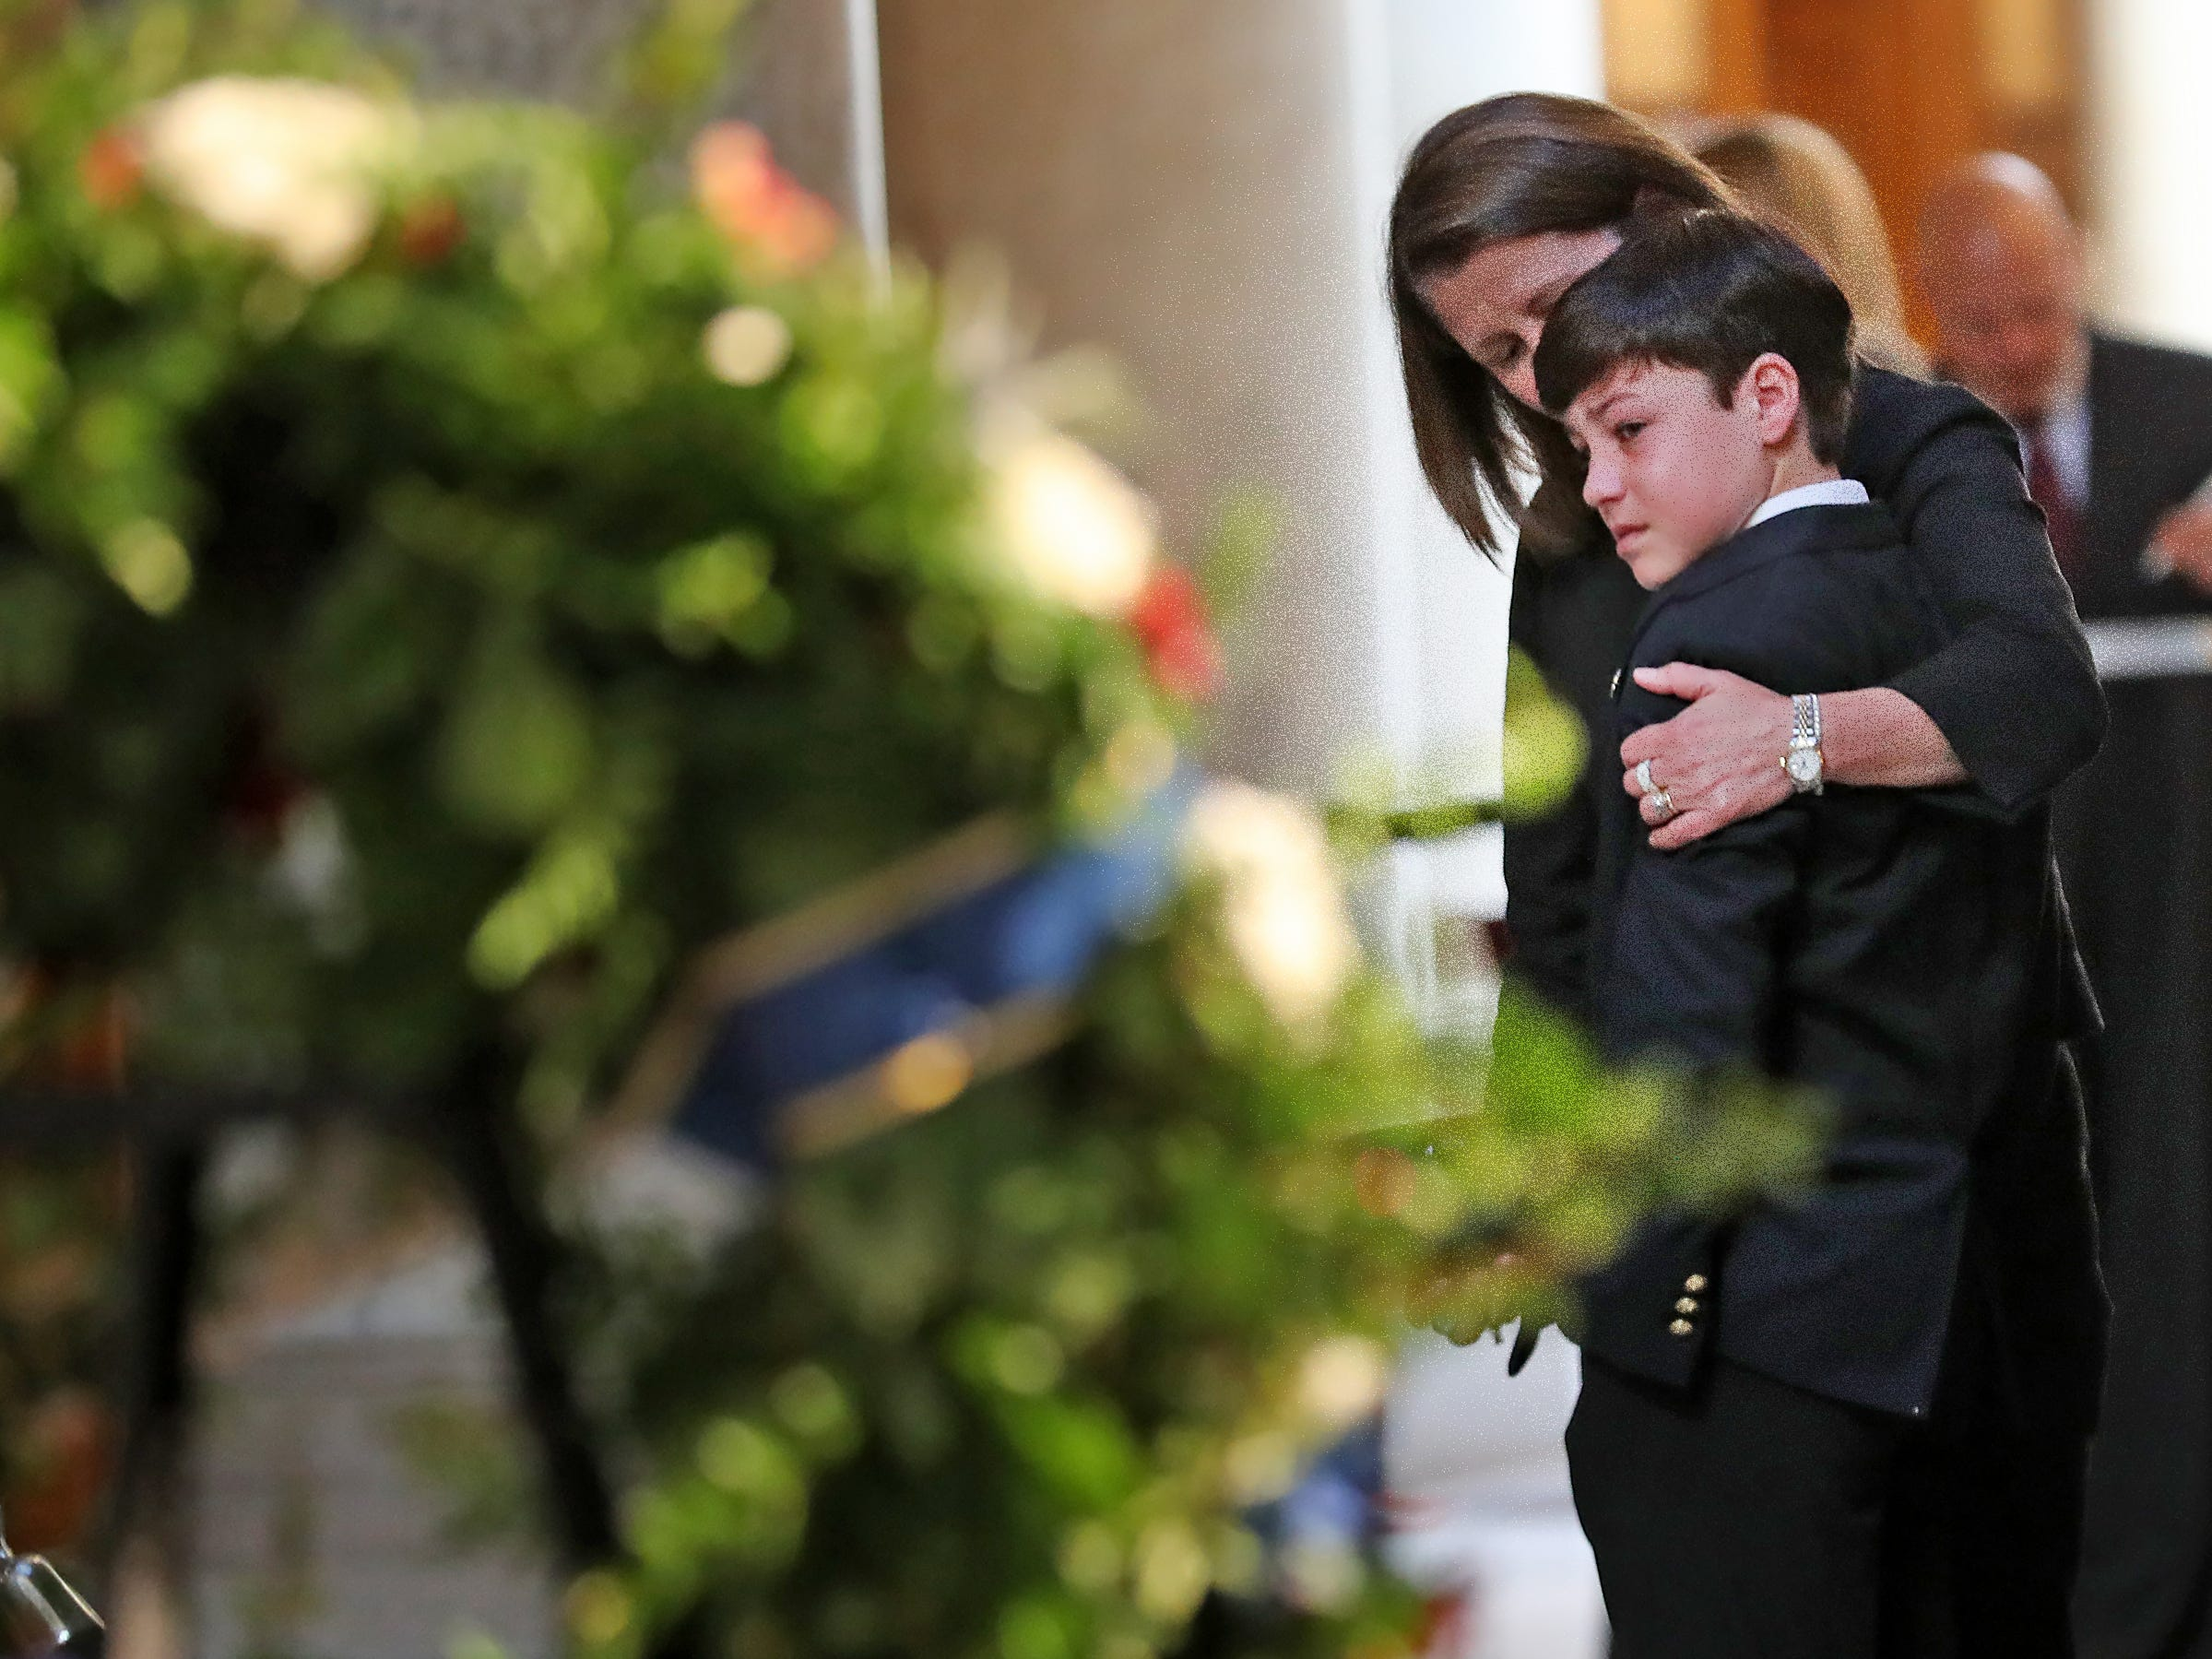 Family stop to see the flag-draped casket as former Senator and Mayor Richard Lugar lies in state under the Statehouse rotunda, Tuesday, May 14, 2019.  The public also paid their respects.